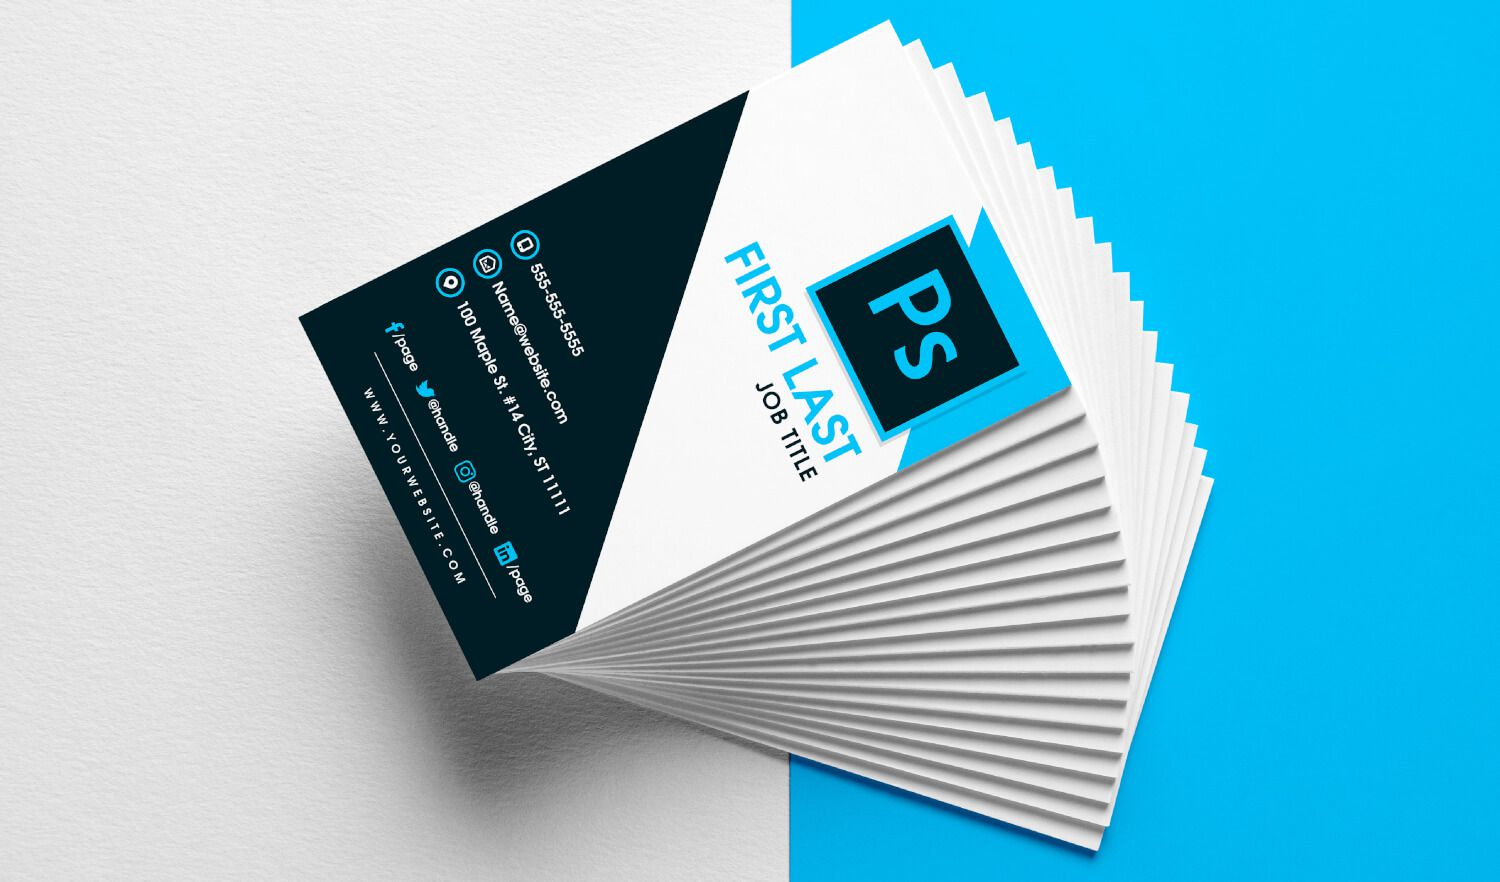 008 Awesome Busines Card Template Psd High Resolution  Professional Photographer Freebie Visiting File Free DownloadFull